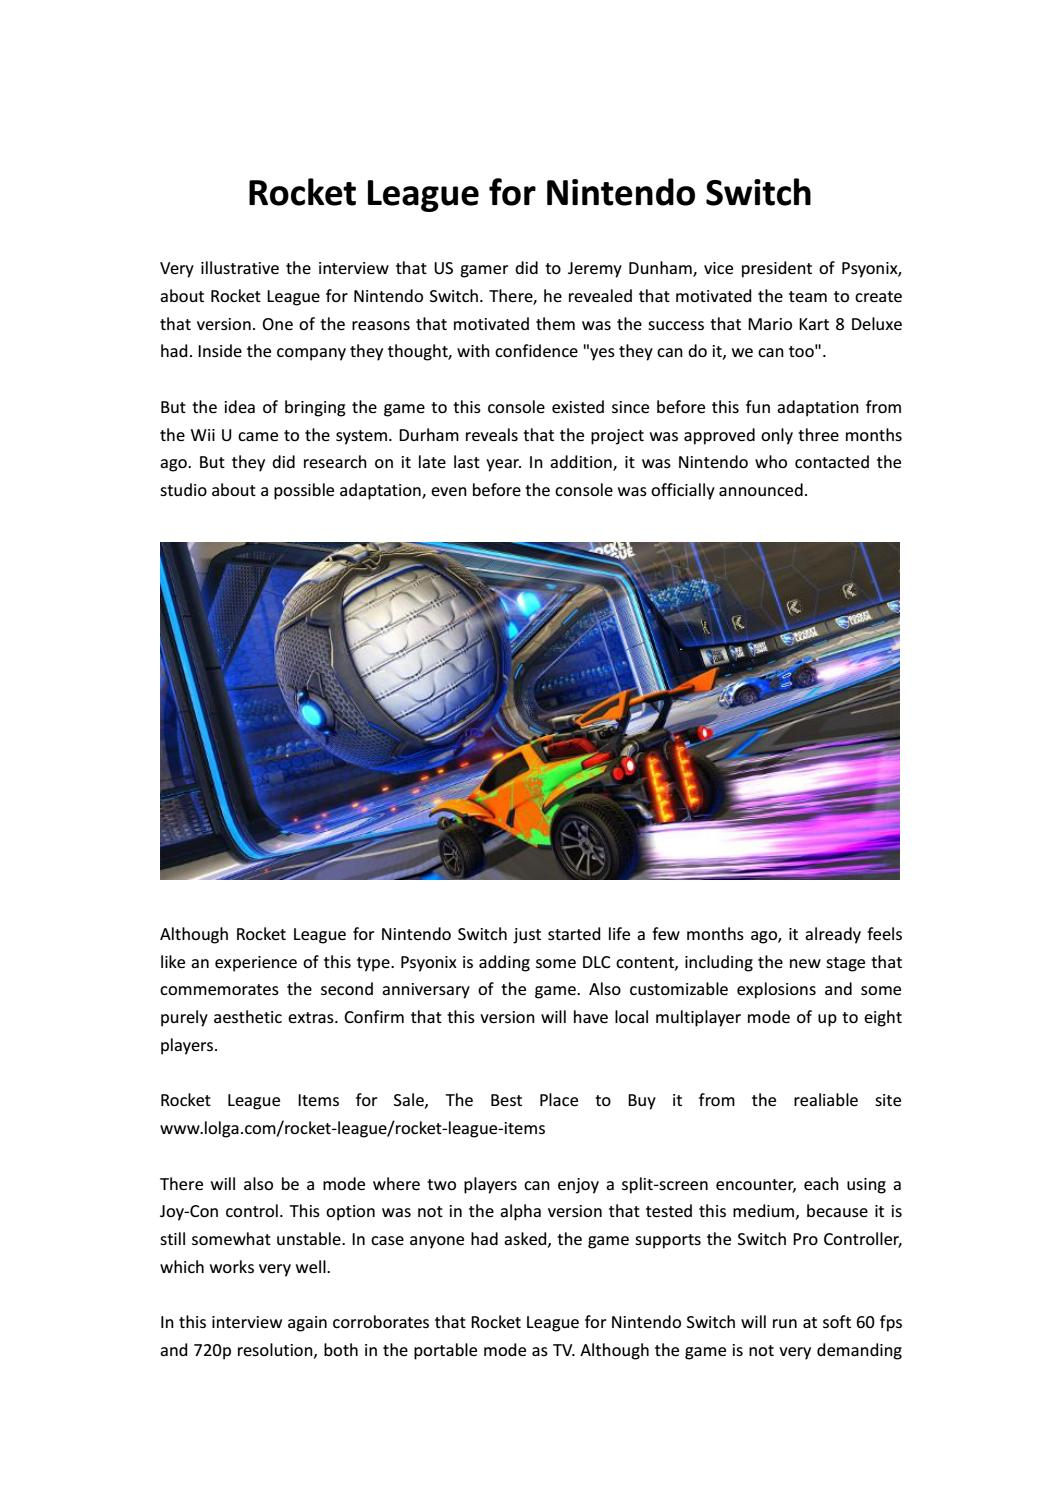 Rocket league for nintendo switch by fifacoinslol - issuu